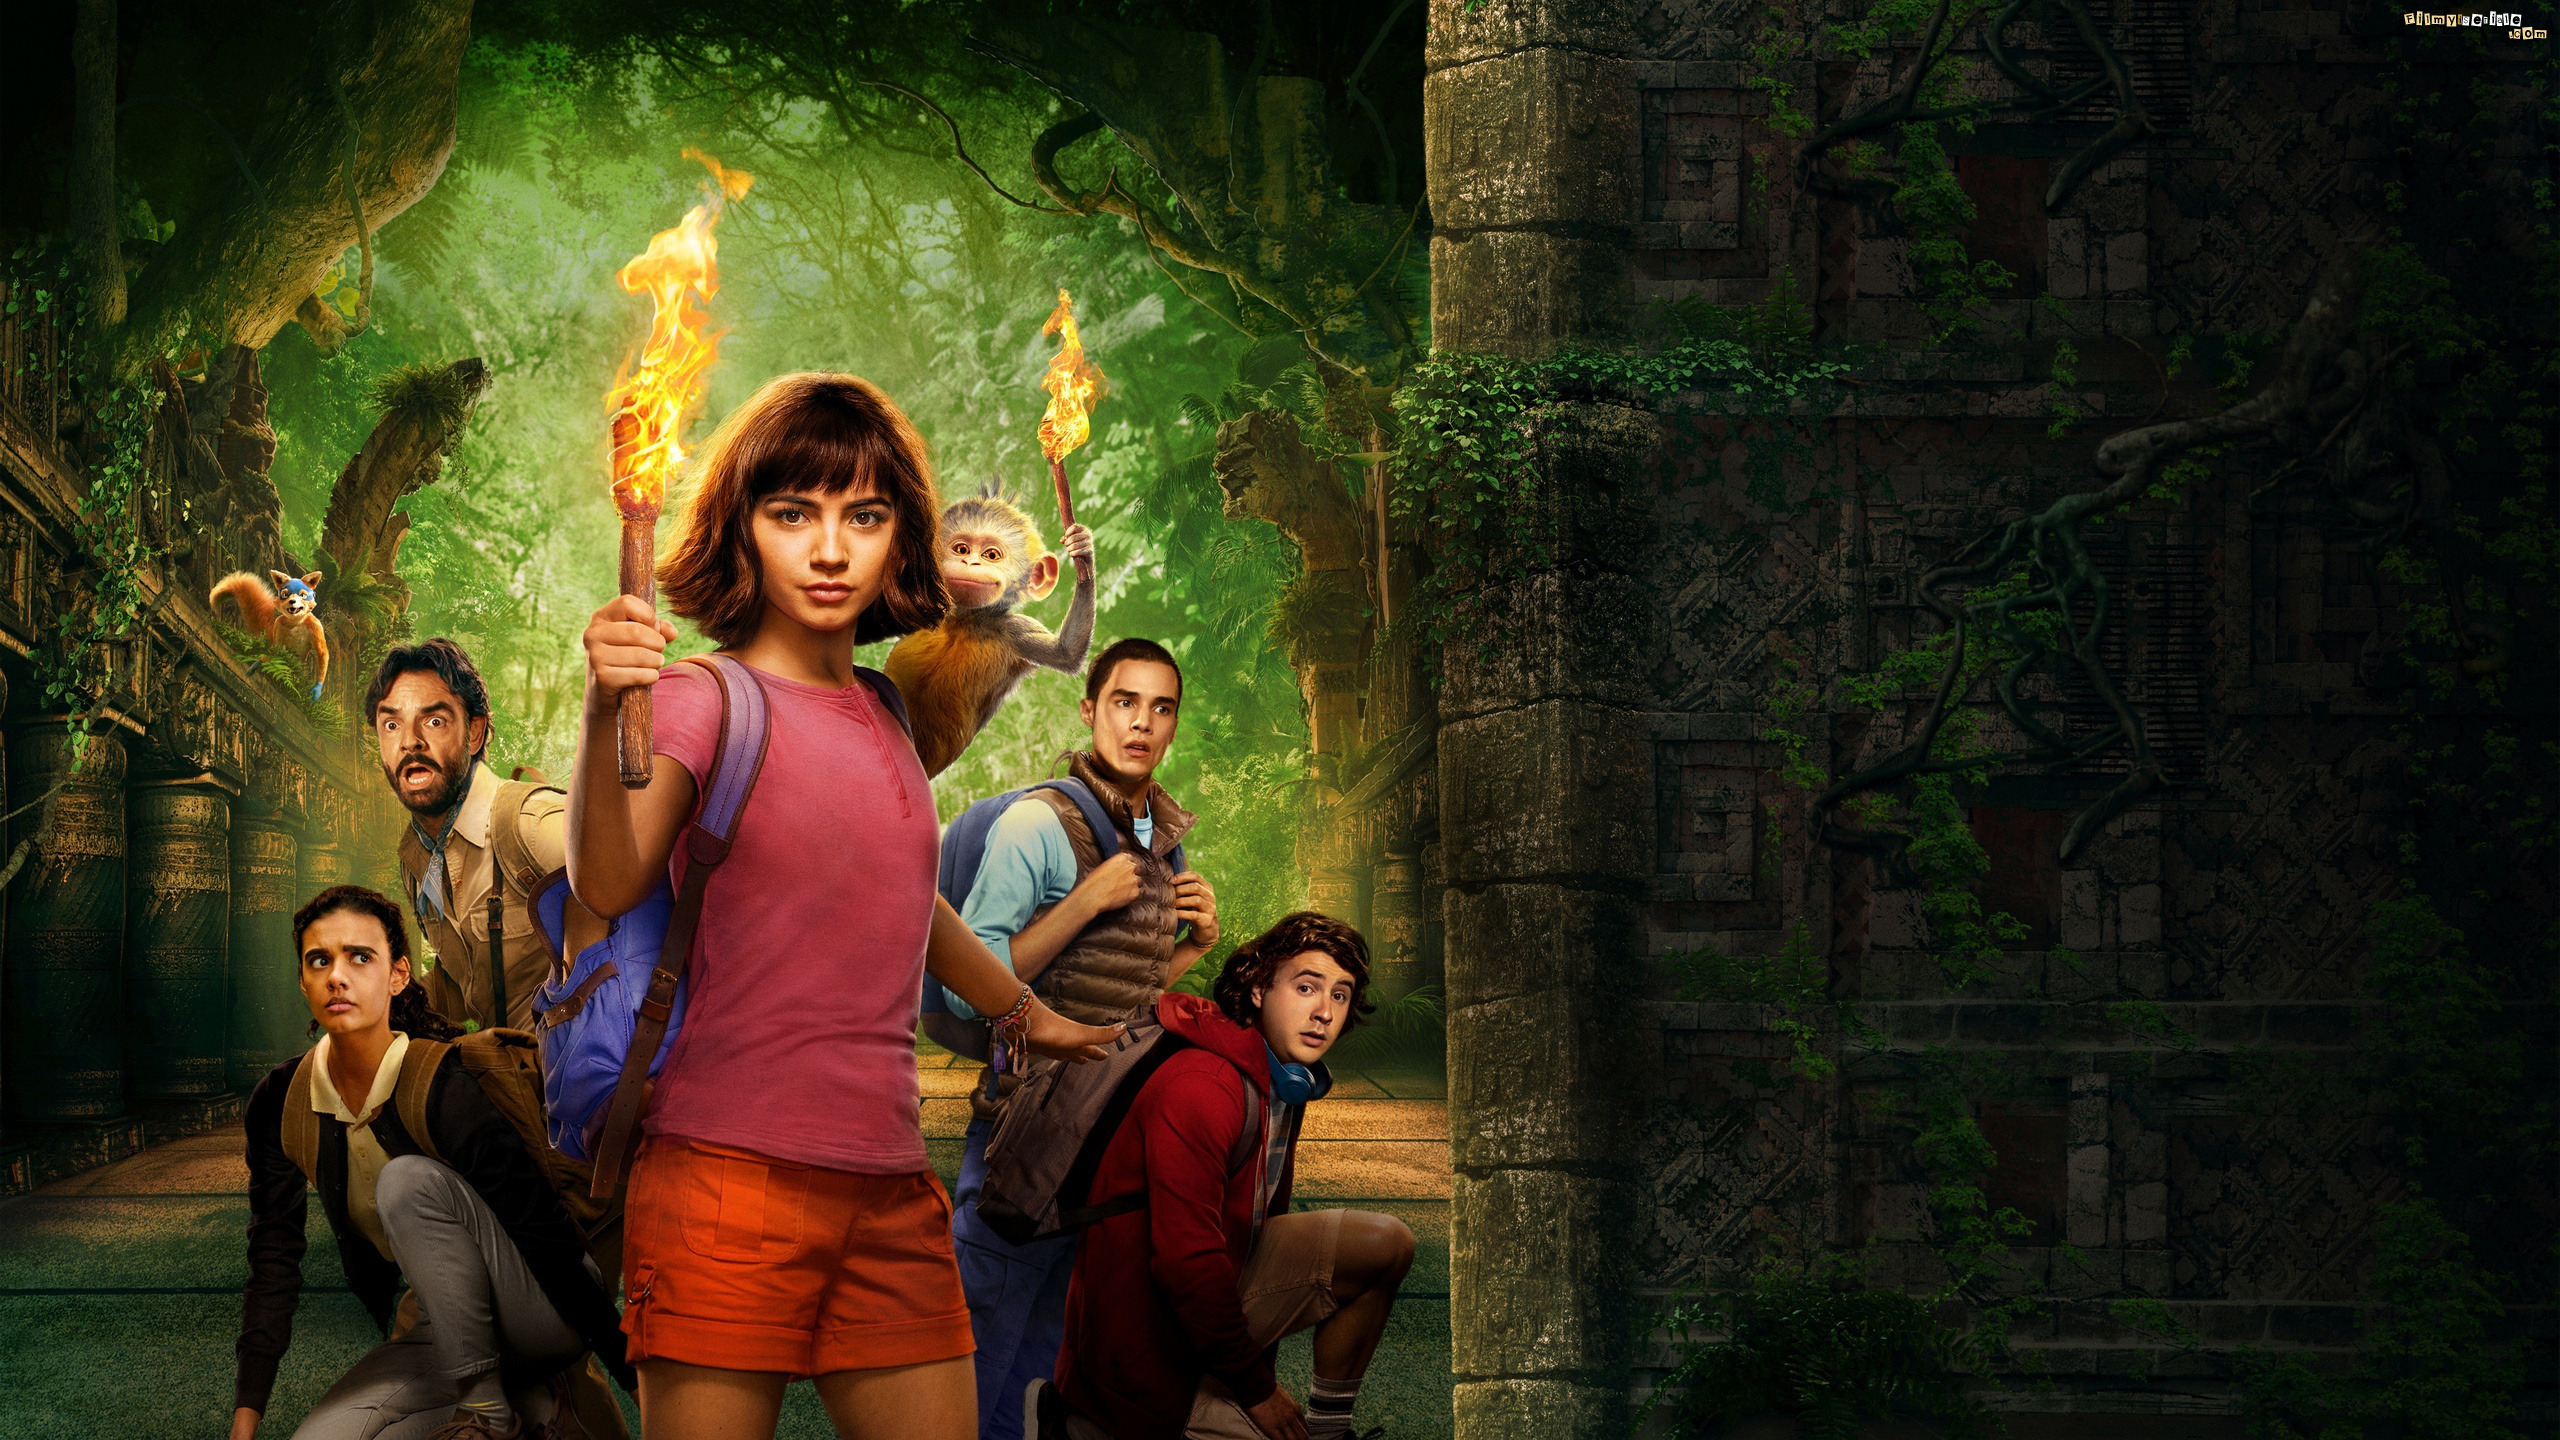 Film, Dora i Miasto Złota, Dora and the Lost City of Gold, Isabela Moner, Aktorka